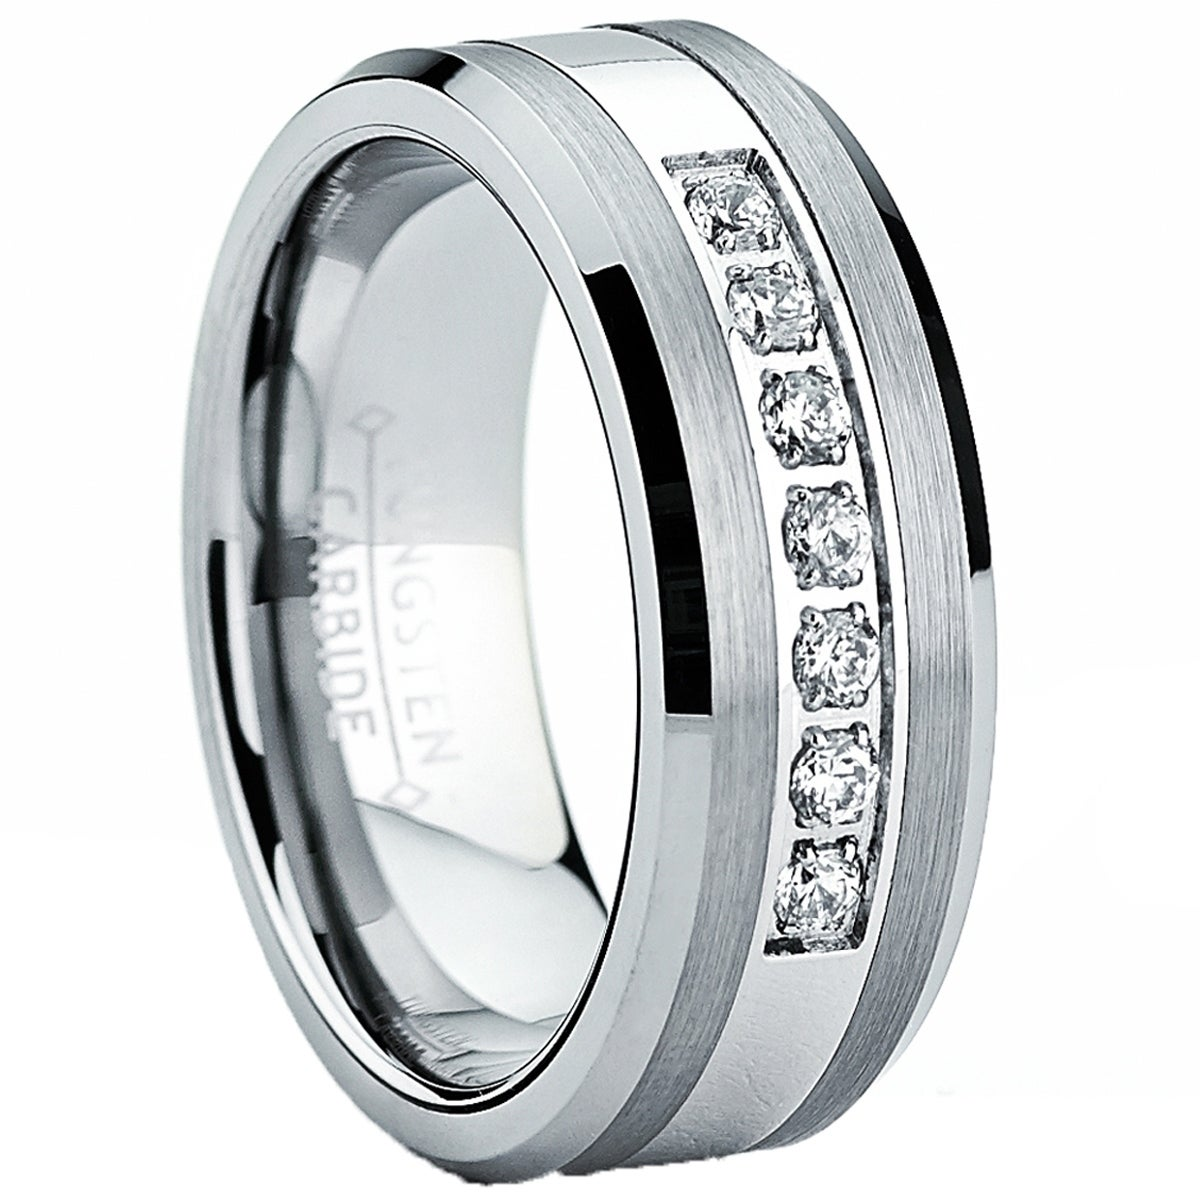 869951f168a Oliveti Men s Tungsten Carbide and Stainless Steel Wedding Band Ring with  Cubic Zirconia